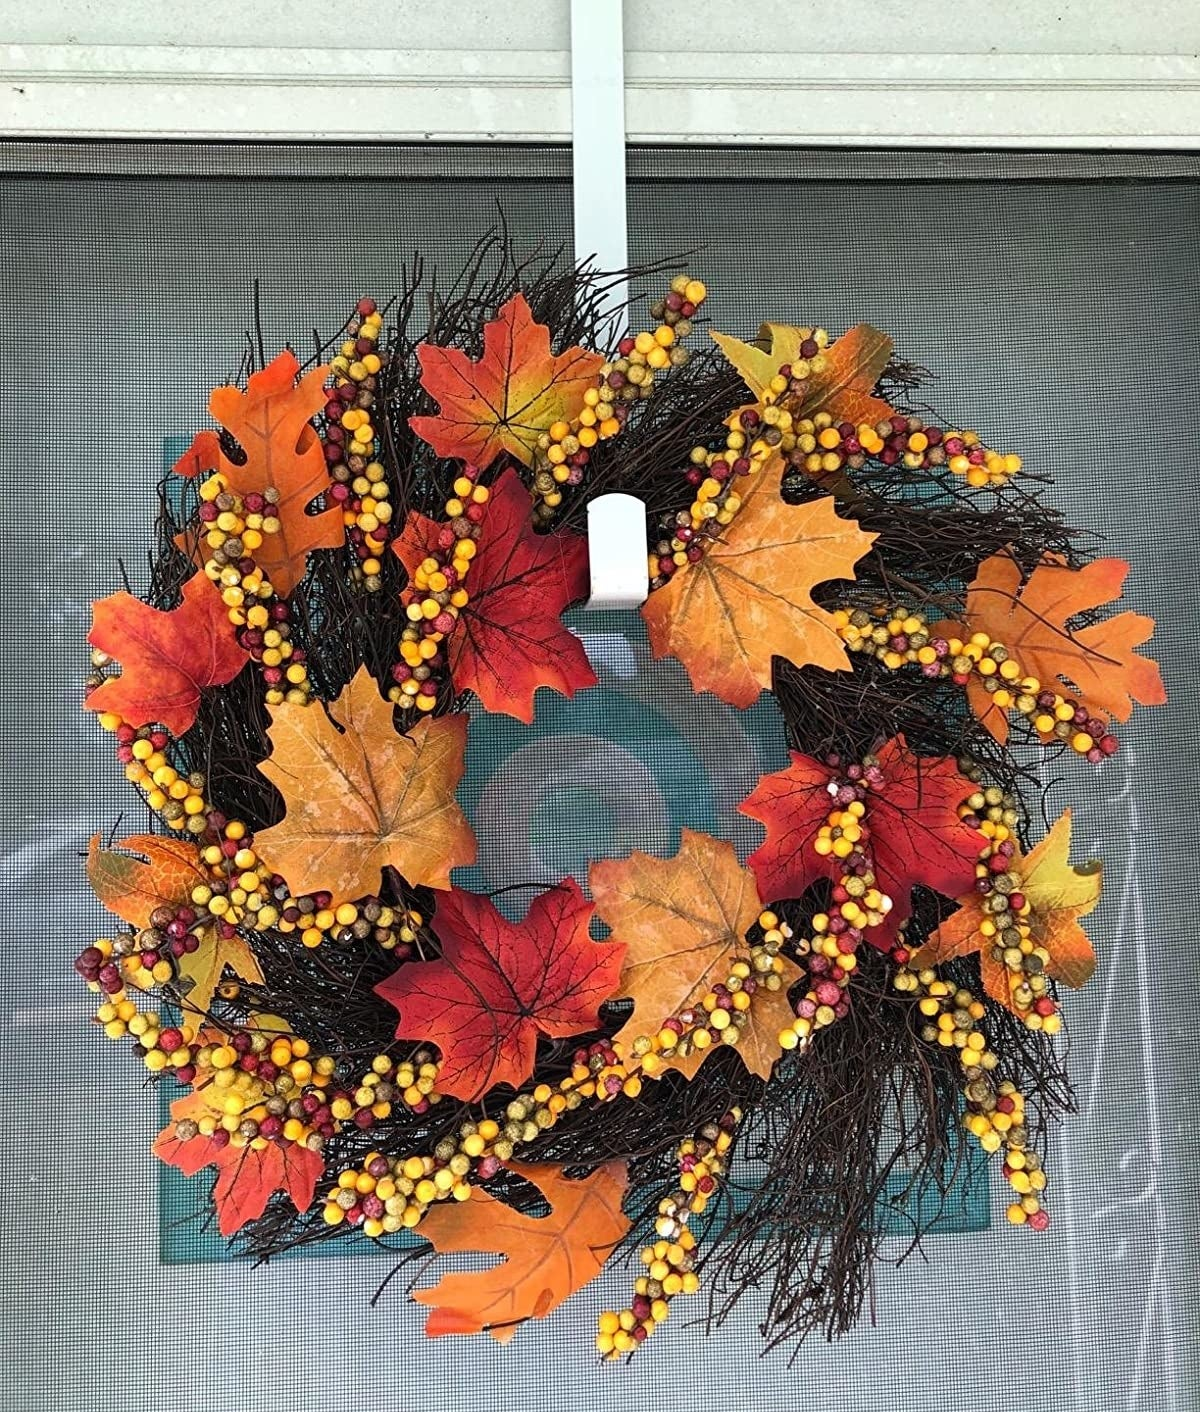 The wreath is full of colorful artificial maple leaves and berries and brown sticks